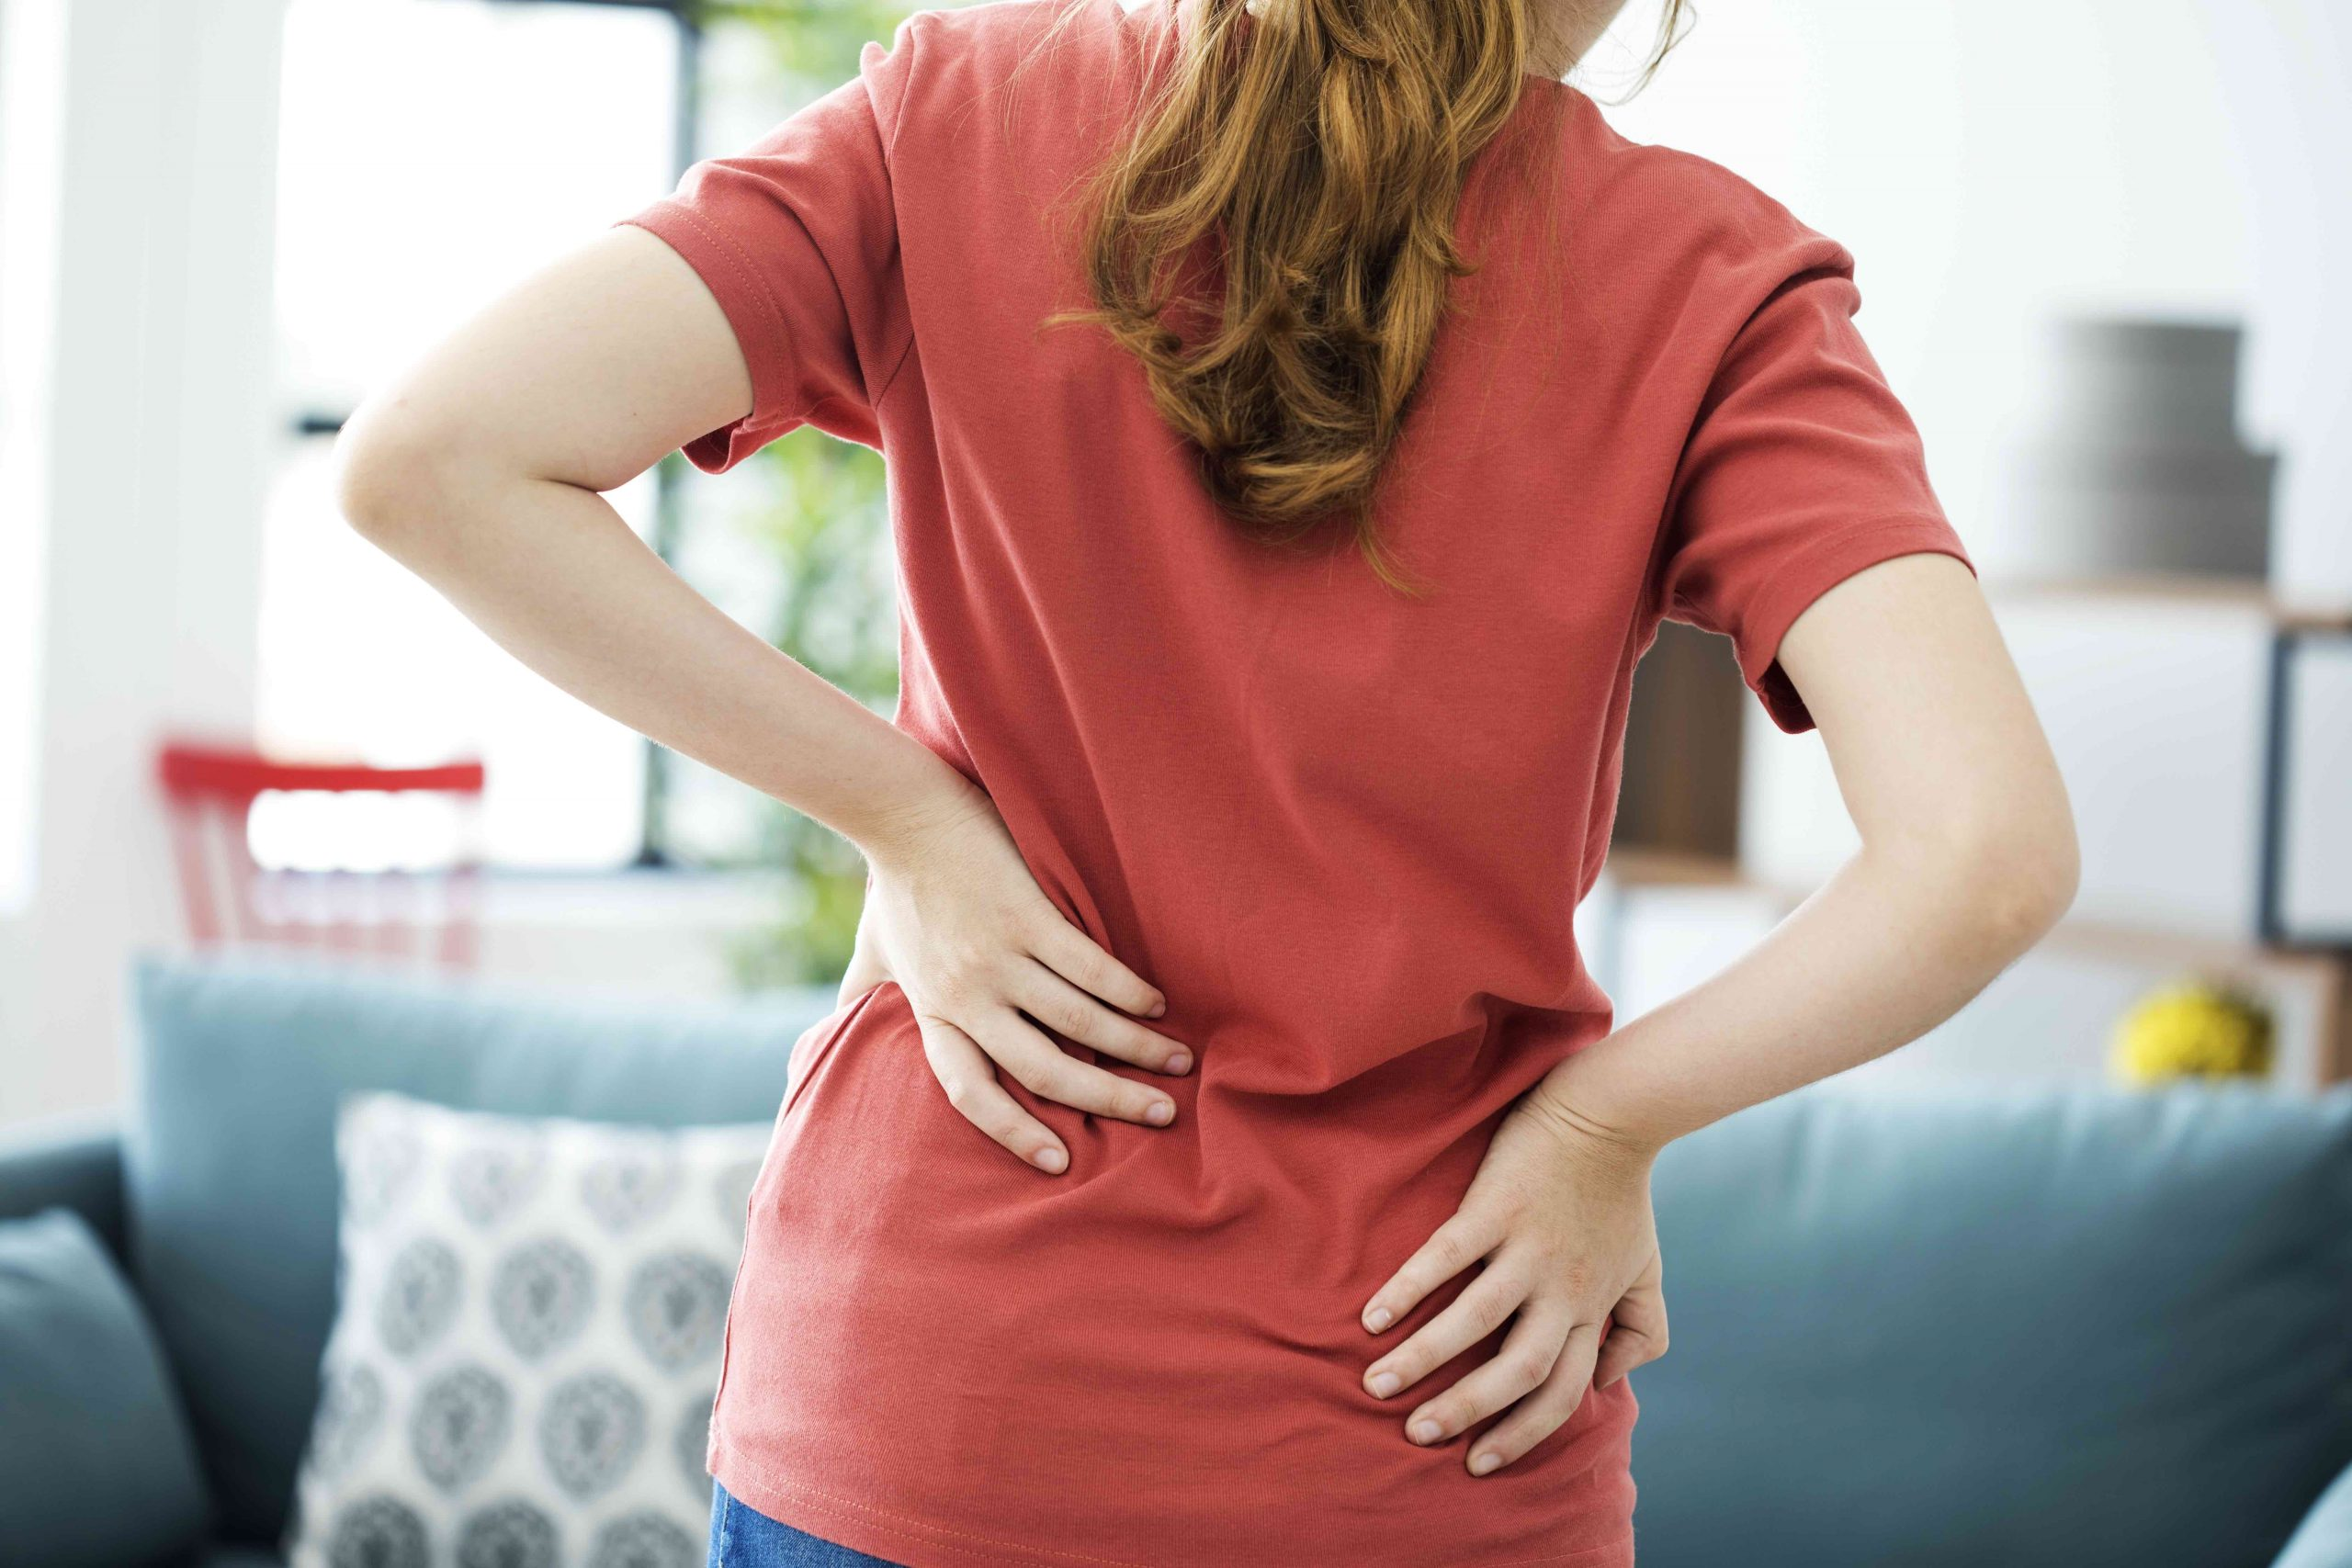 Sacroiliac joint injection can treat low back and buttock pain